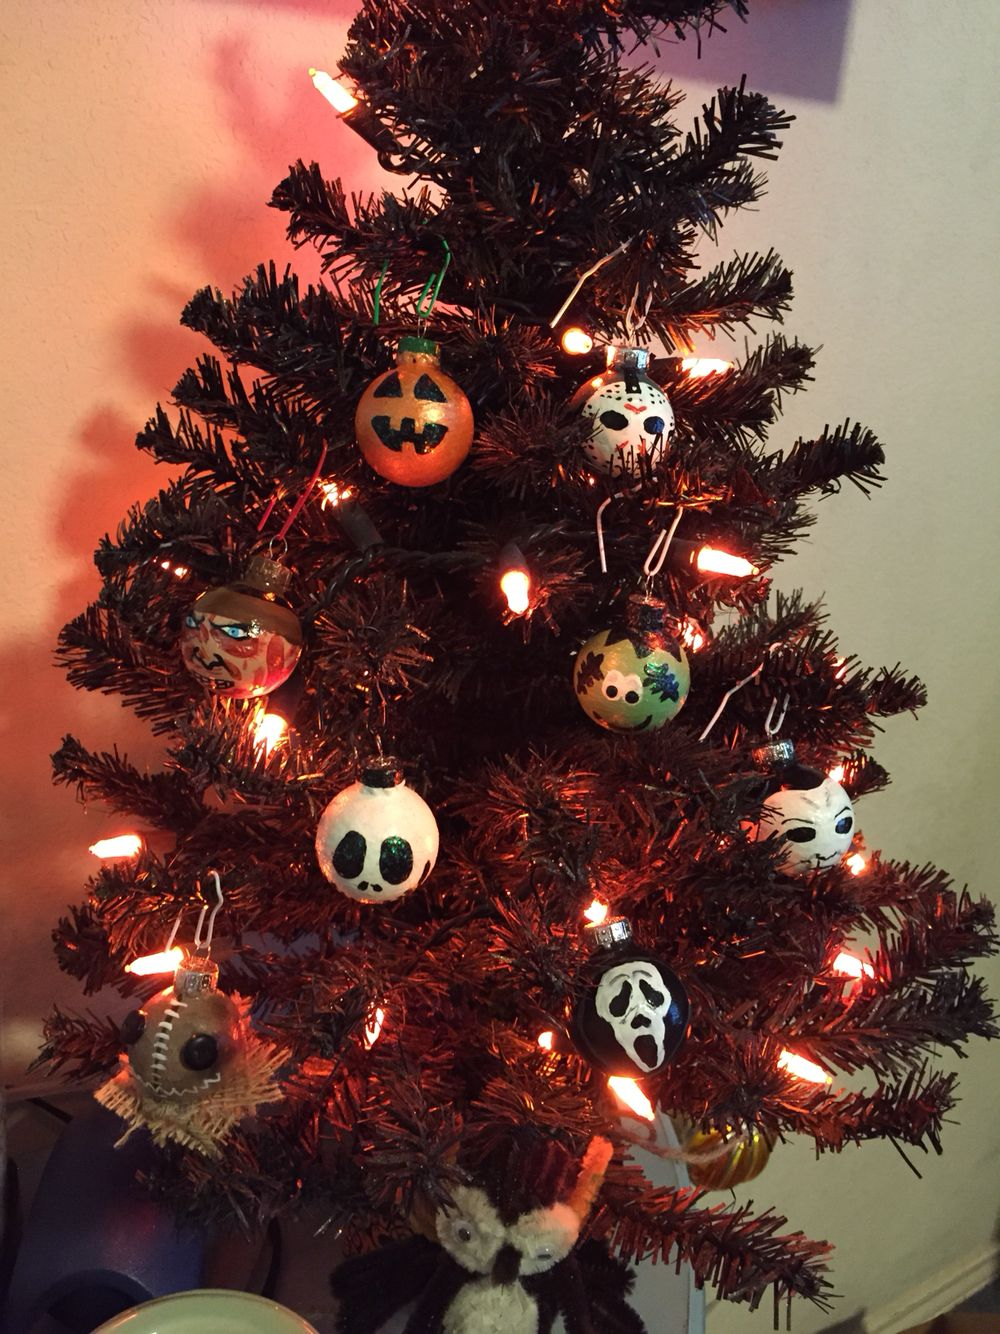 Handpainted Halloween Ornaments for the Halloween Tree